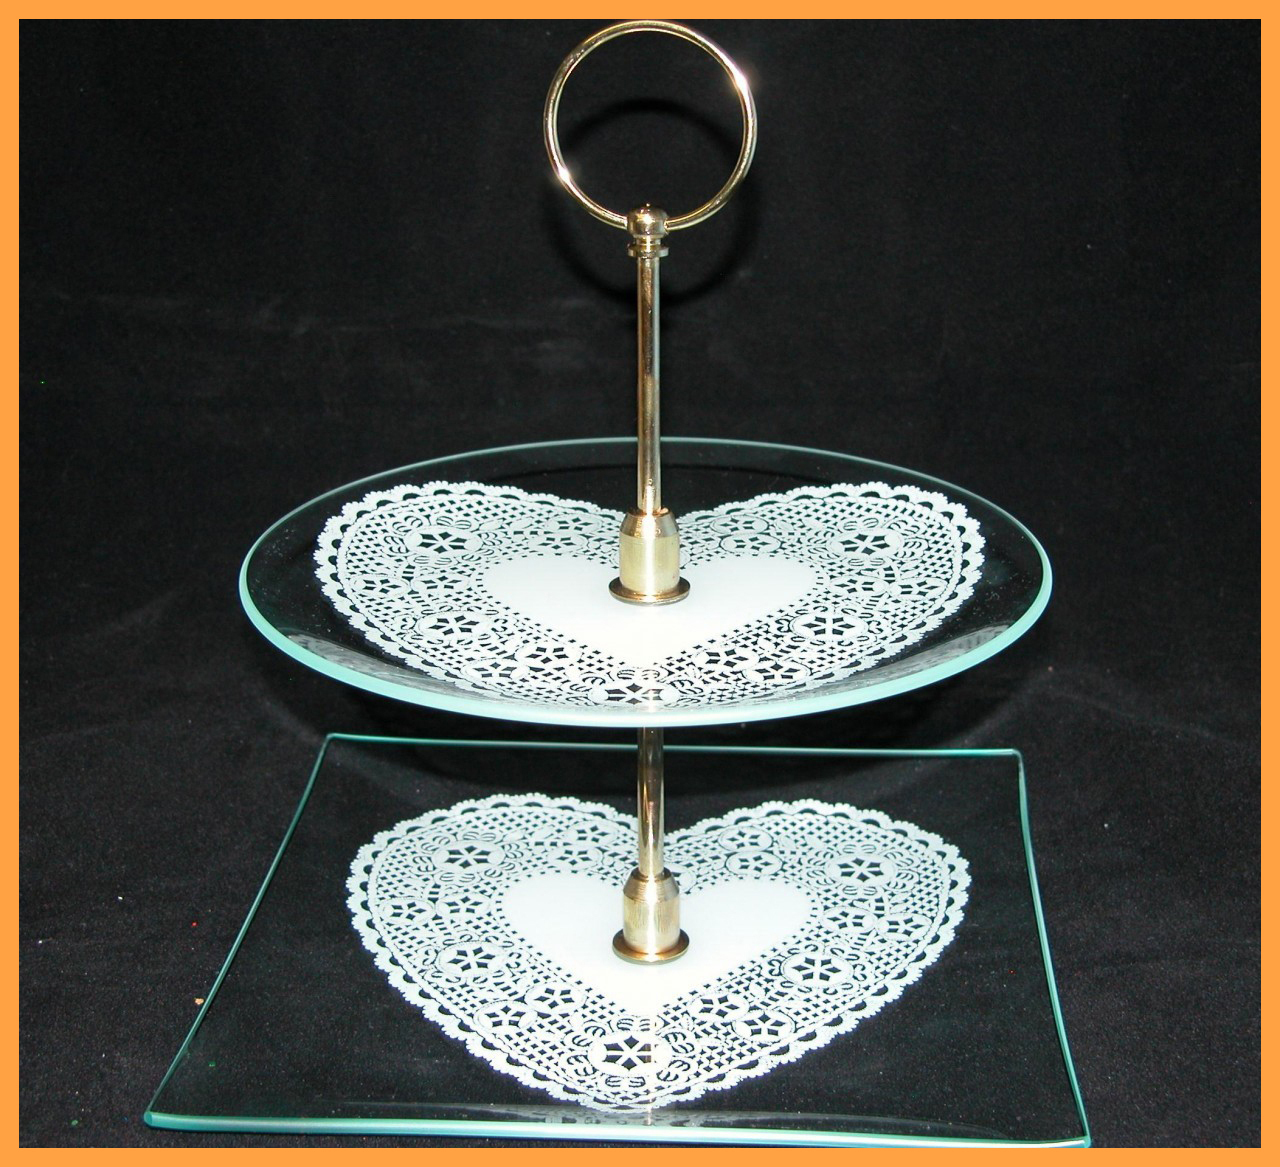 2 Piece Tray Set - 9